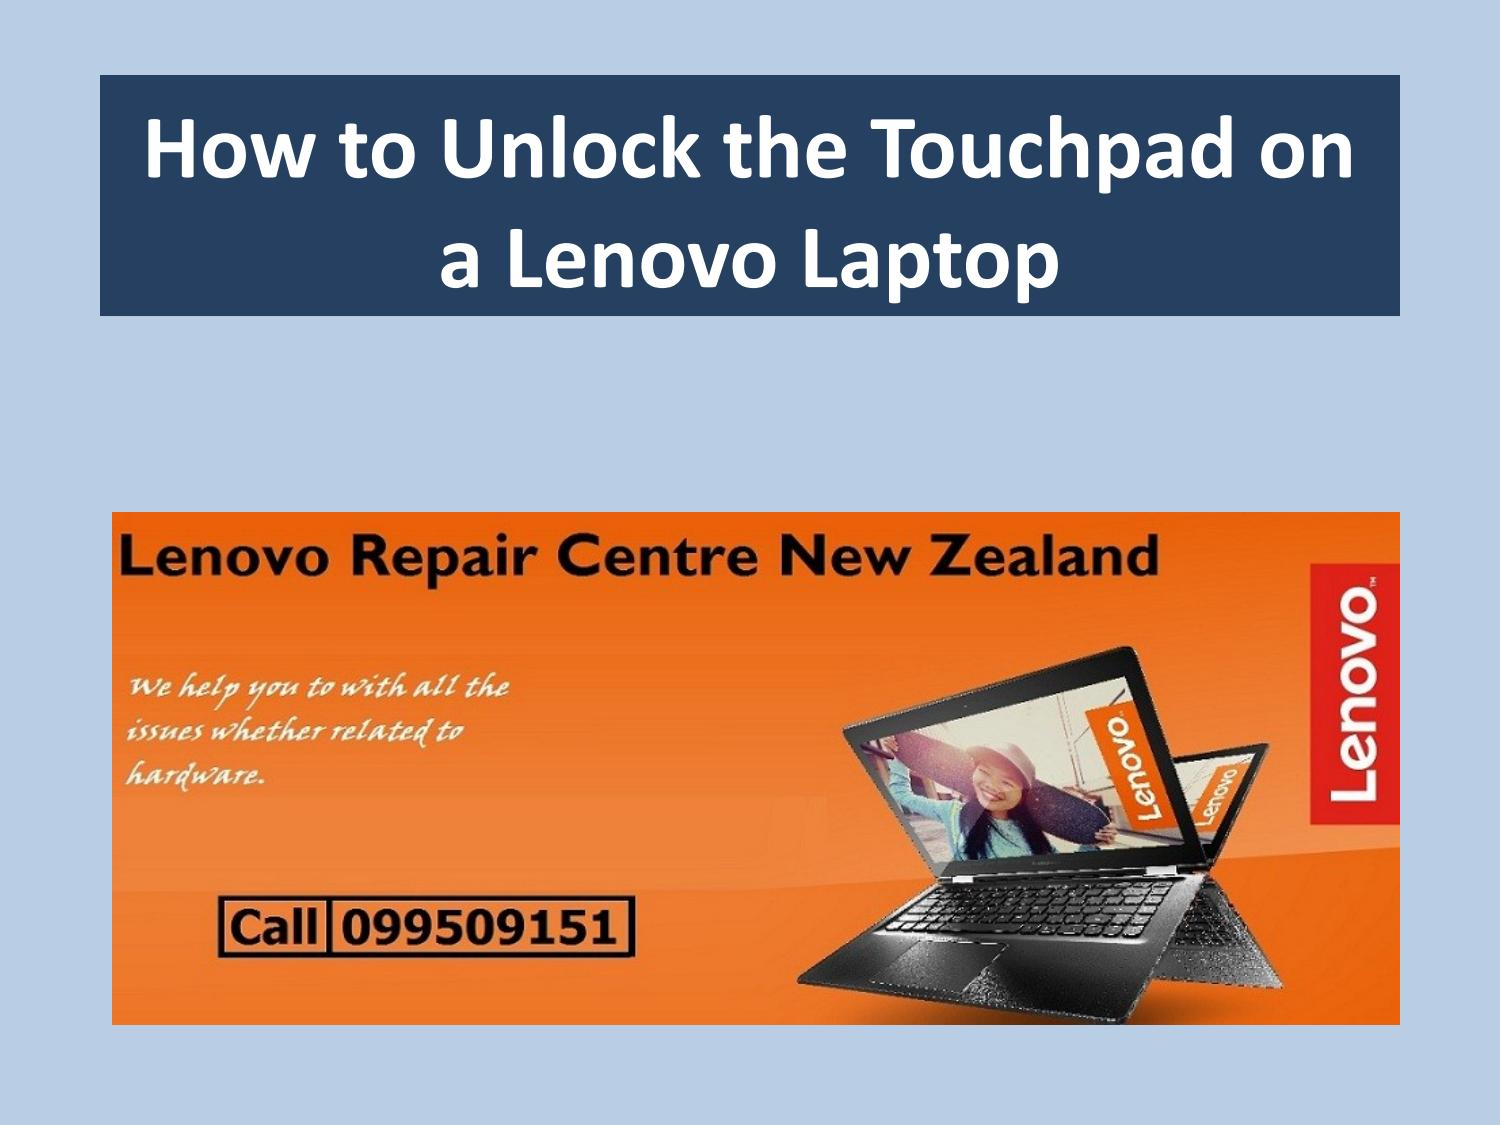 How To Unlock The Touchpad On A Lenovo Laptop By Lenovorepairnz Issuu